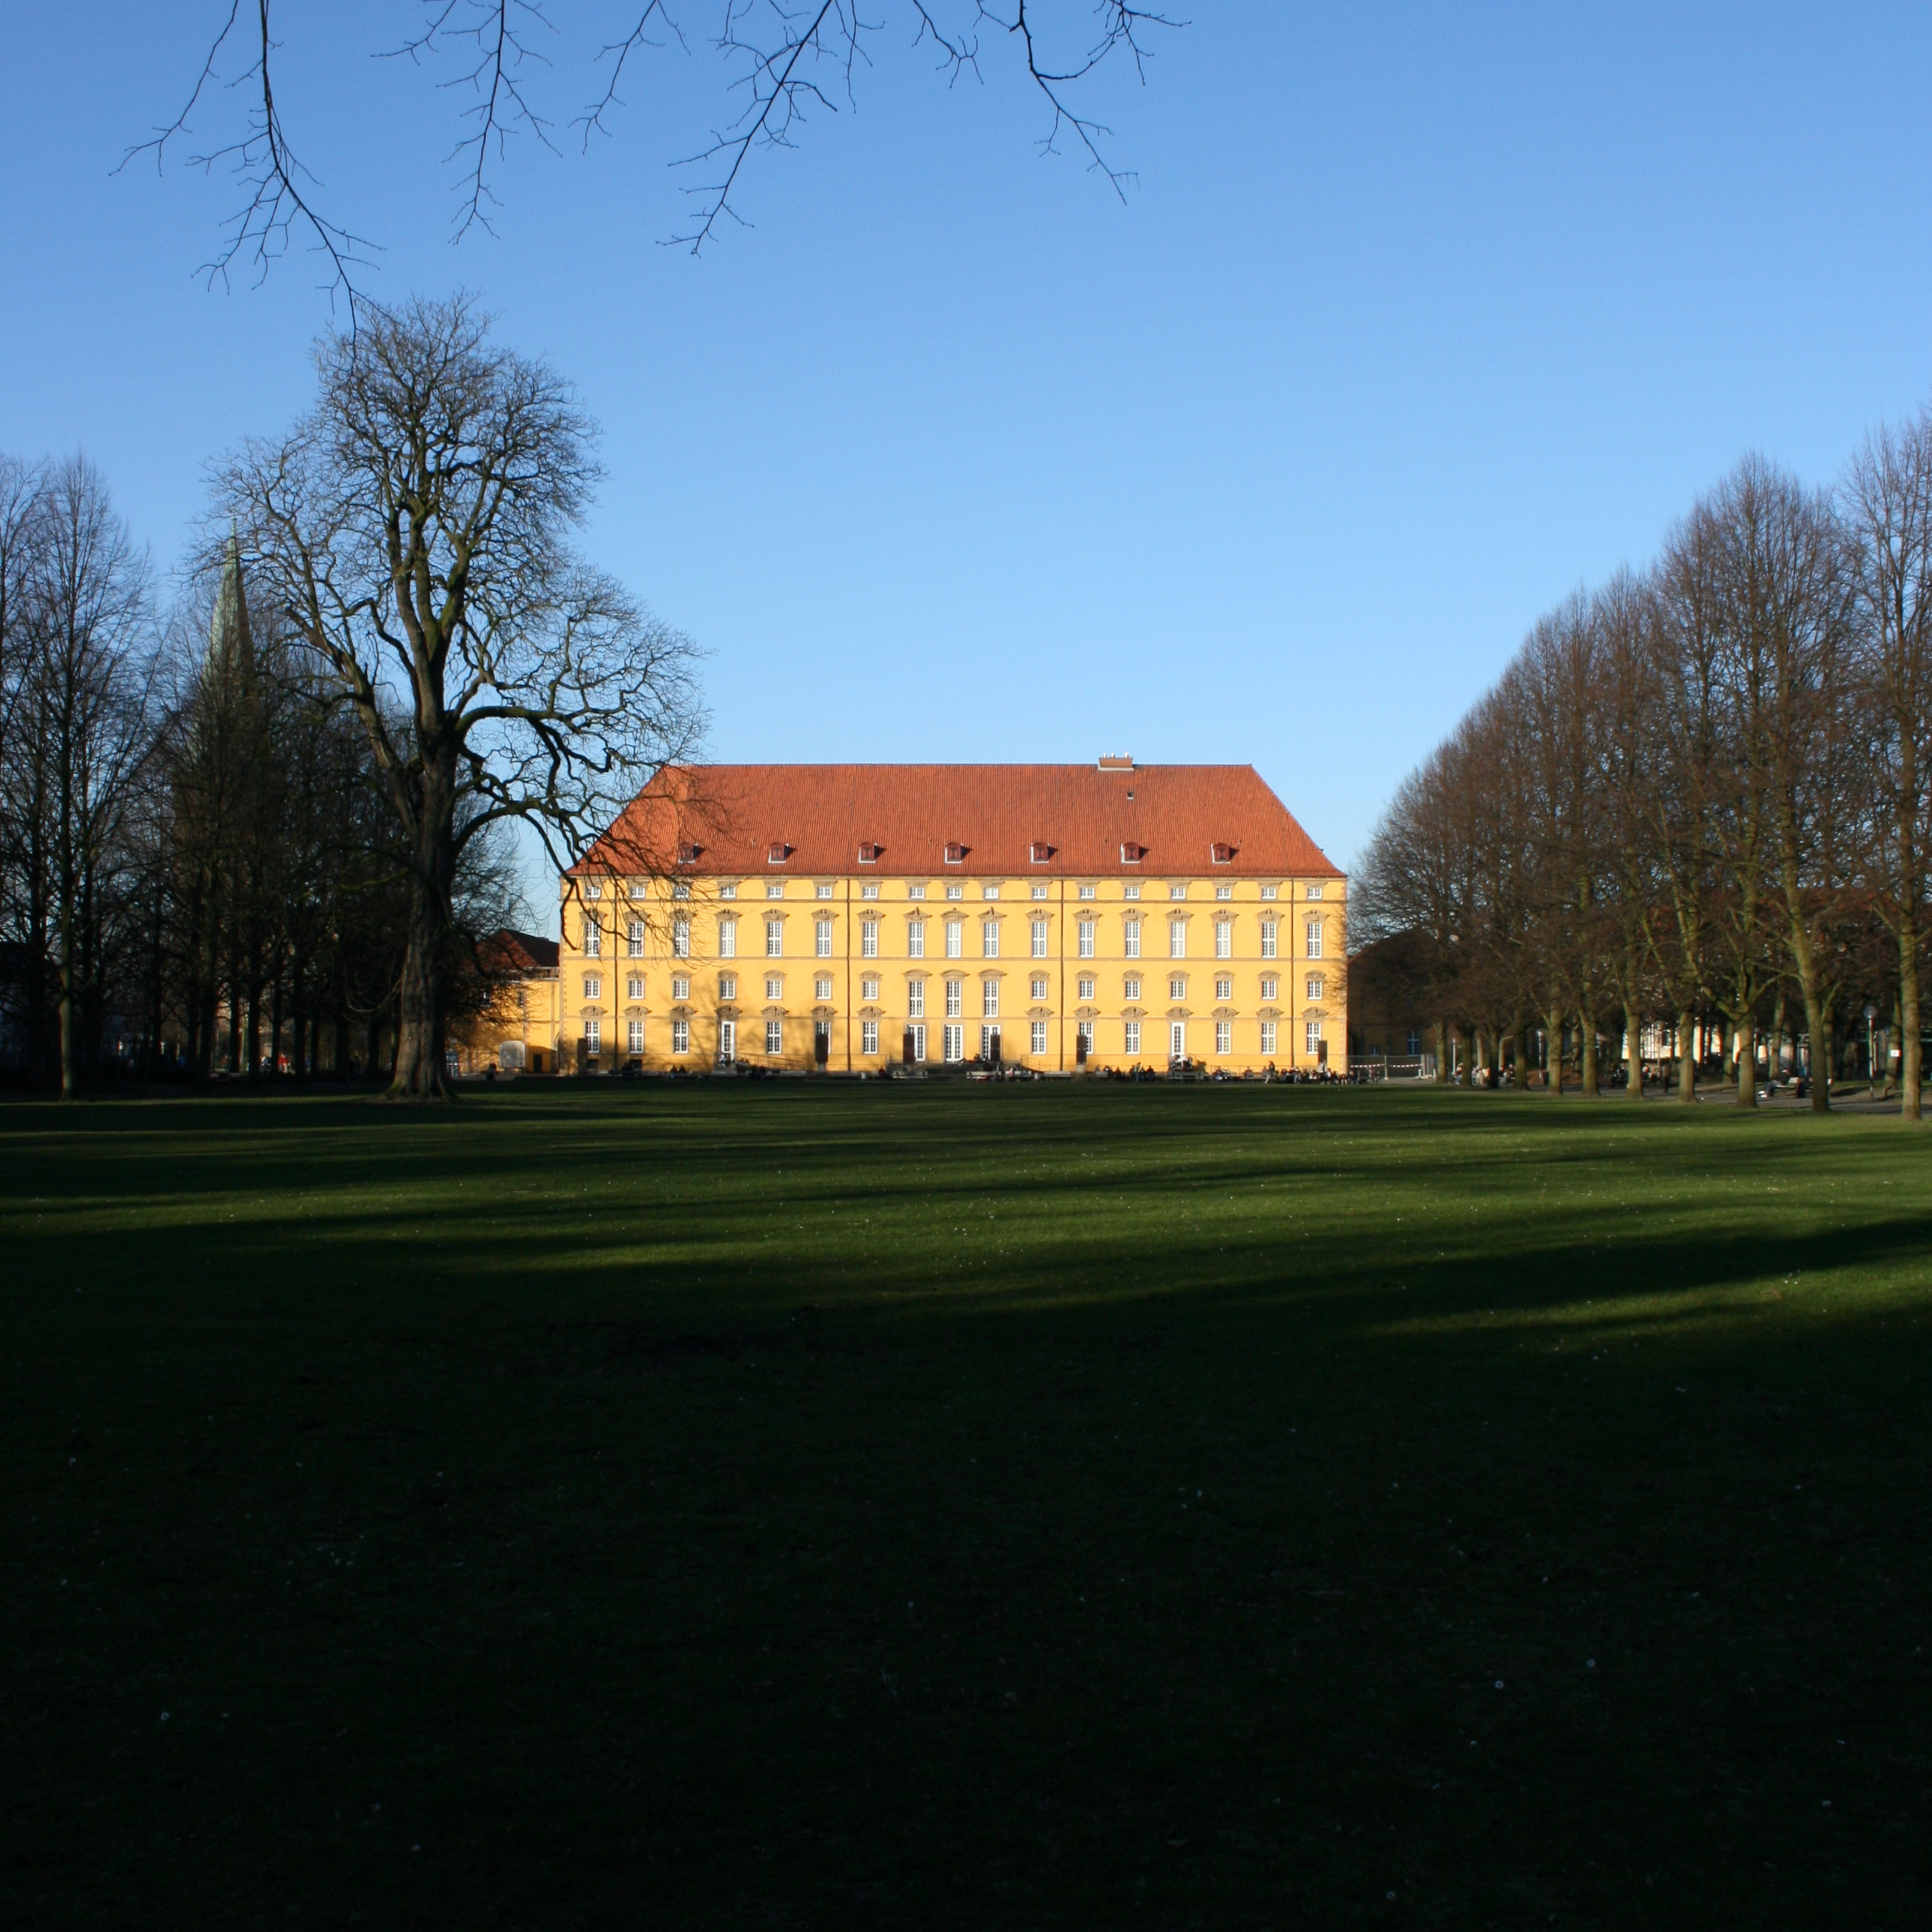 Schloss_Osnabrueck Faszinierend Leiste Für Led Stripes Dekorationen